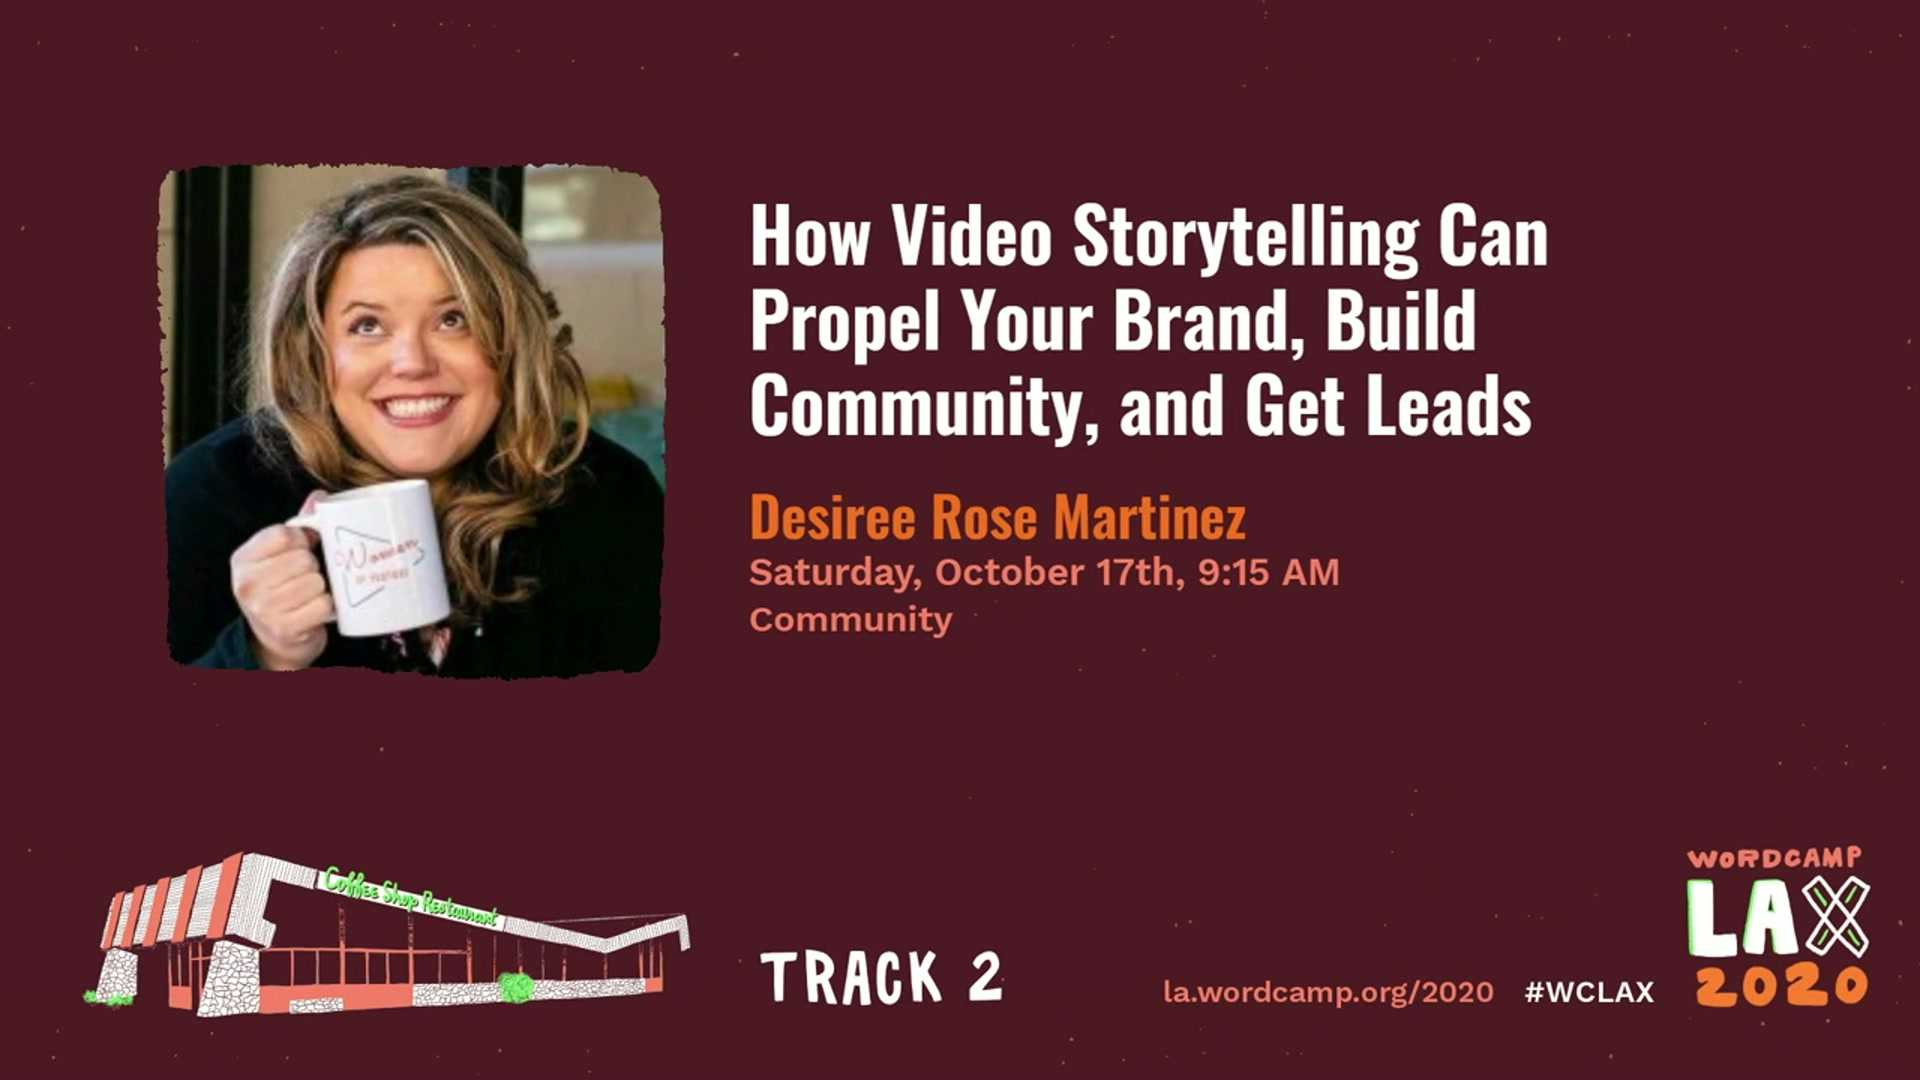 Desiree Rose Martinez: How Video Storytelling Can Propel Your Brand, Build Community, and Get Leads